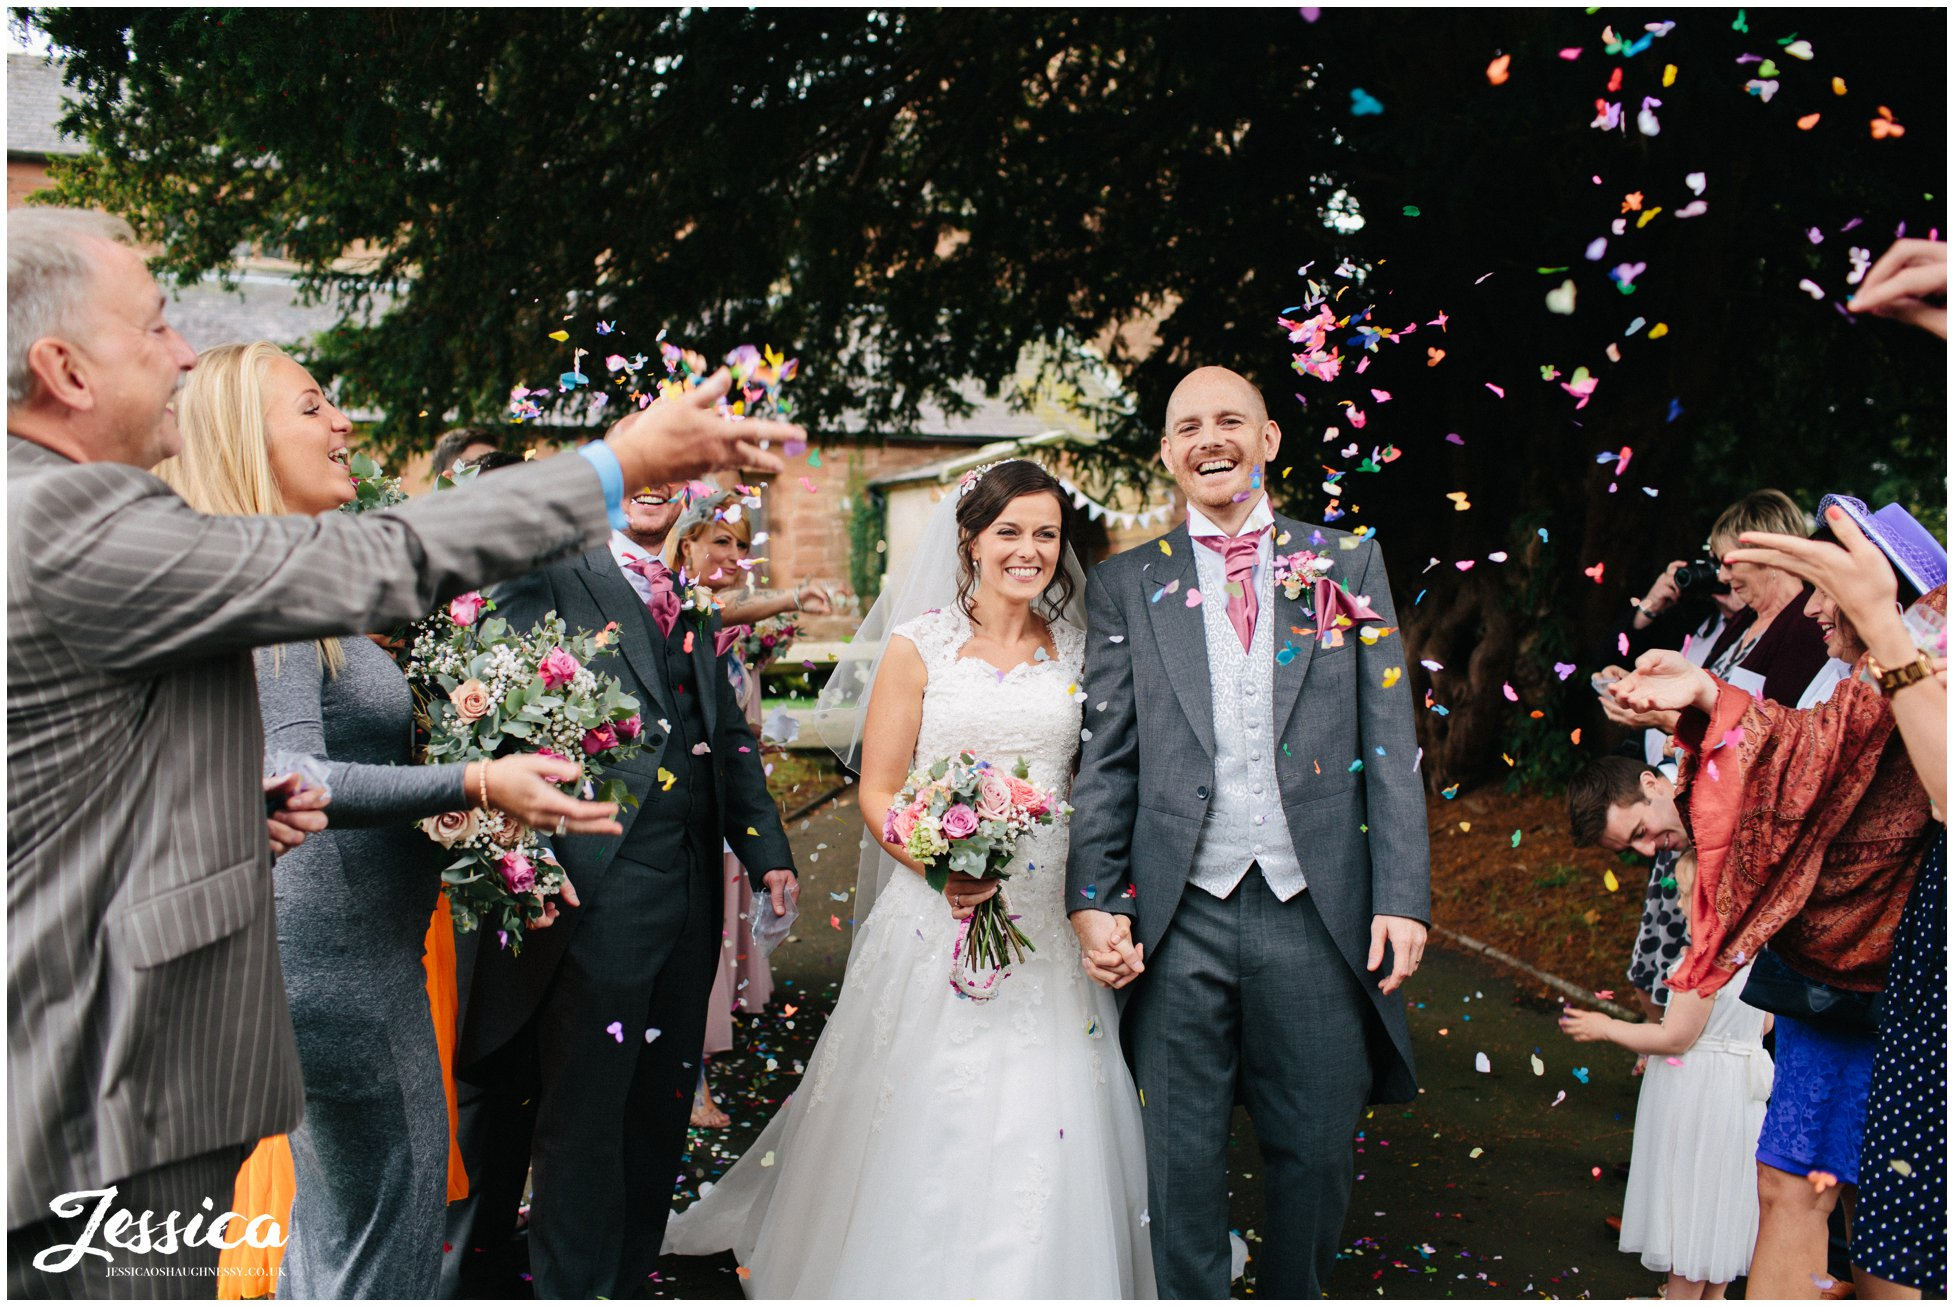 colourful confetti lin at st chad's church in farndon, chester